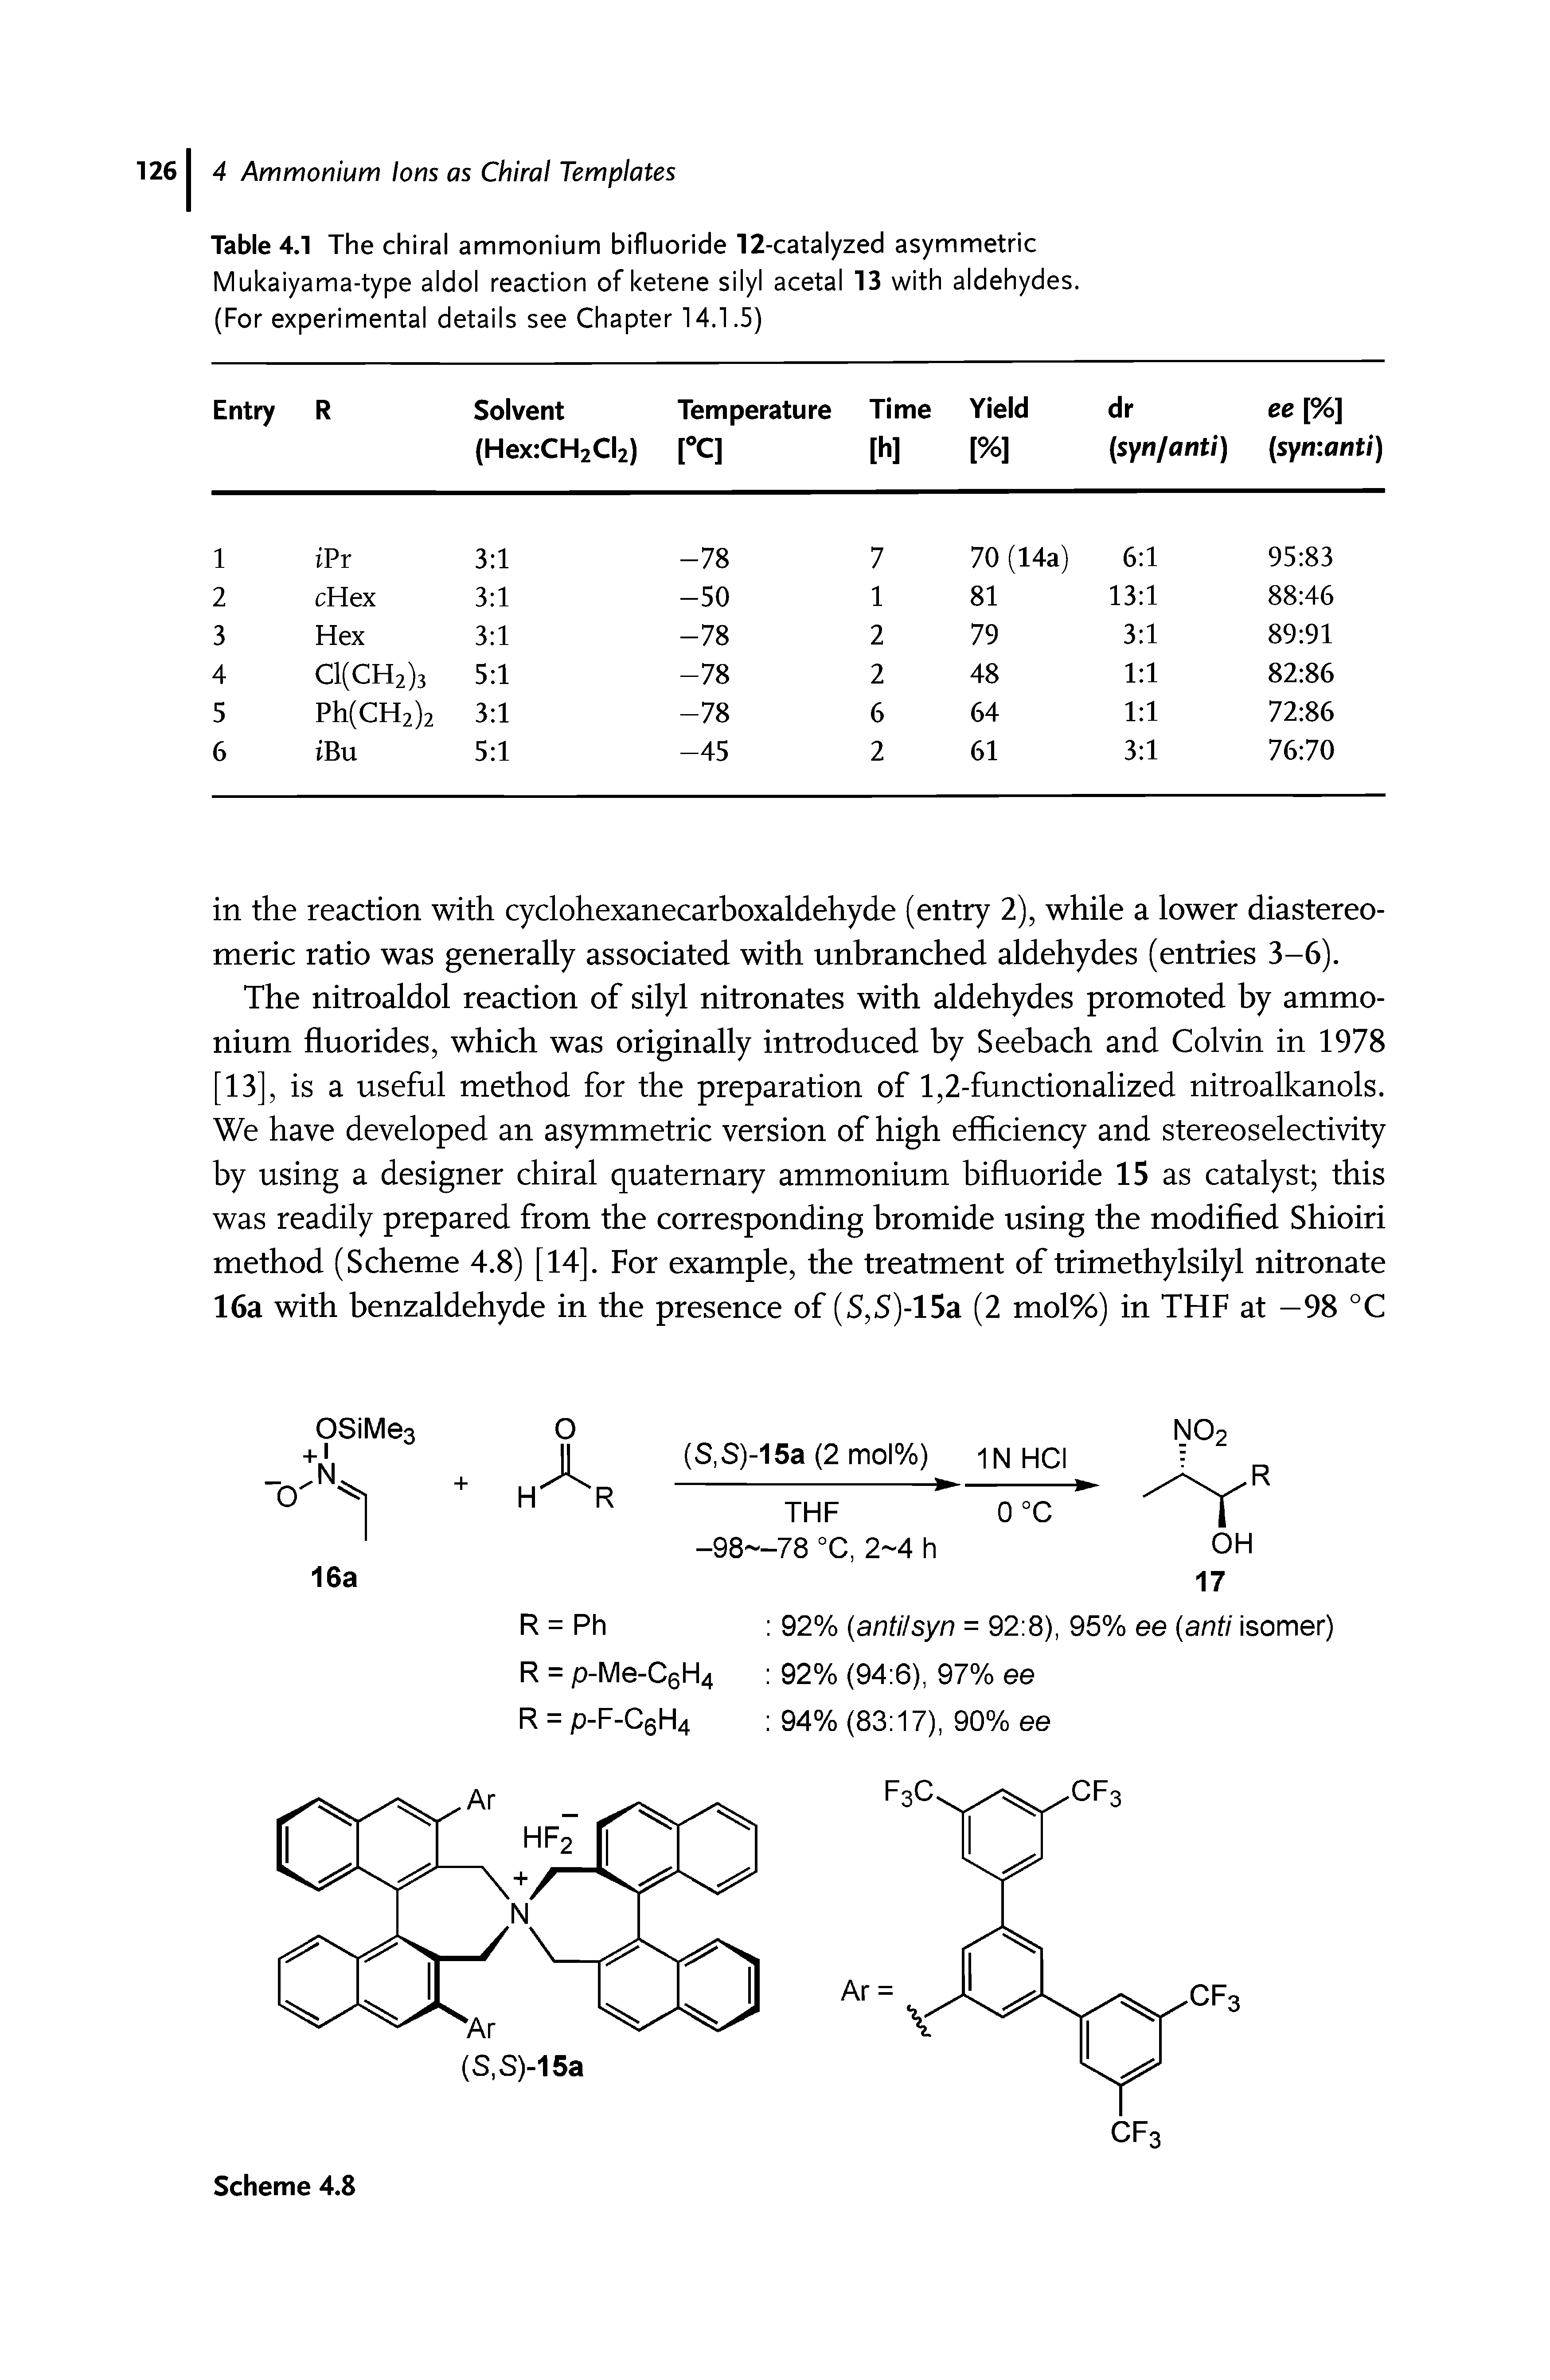 "Table 4.1 The <a href=""/info/ammonium_chiral"">chiral ammonium</a> bifluoride 12-catalyzed <a href=""/info/asymmetric_mukaiyama_type_aldol_reactions"">asymmetric Mukaiyama-type aldol reaction</a> of <a href=""/info/silyl_ketene_acetals"">ketene silyl acetal</a> 13 <a href=""/info/with_aldehydes"">with aldehydes</a>. (For <a href=""/info/experimental_details"">experimental details</a> see Chapter 14.1.5)"